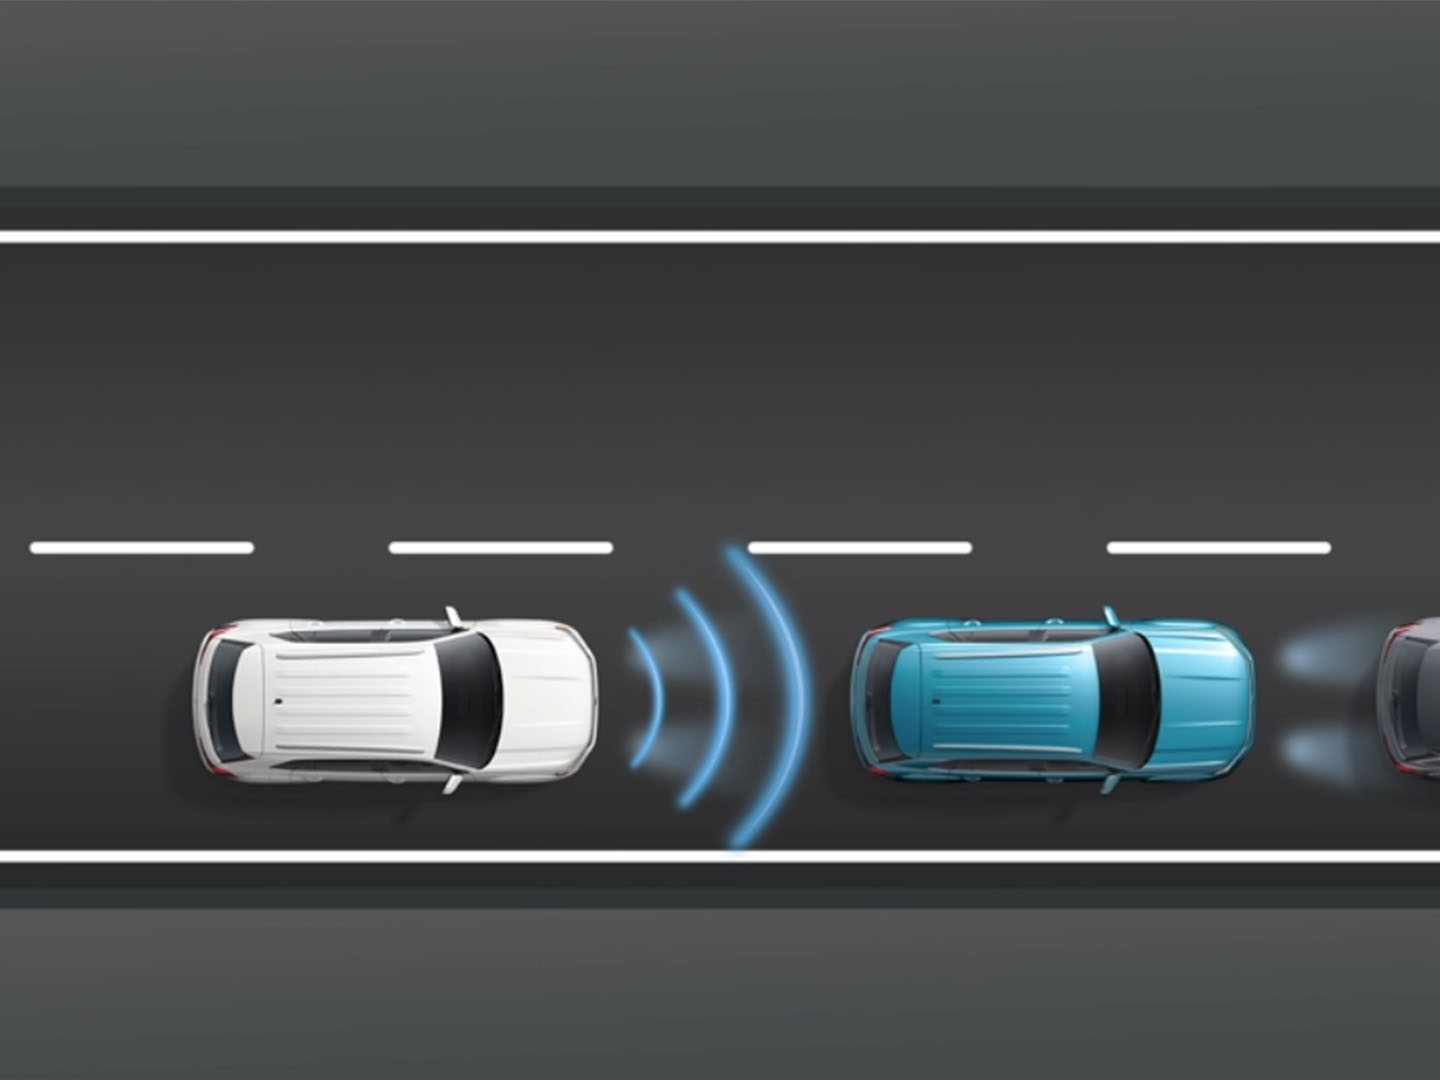 3-D Model of the VW adaptive cruise control with stop and go technology on display